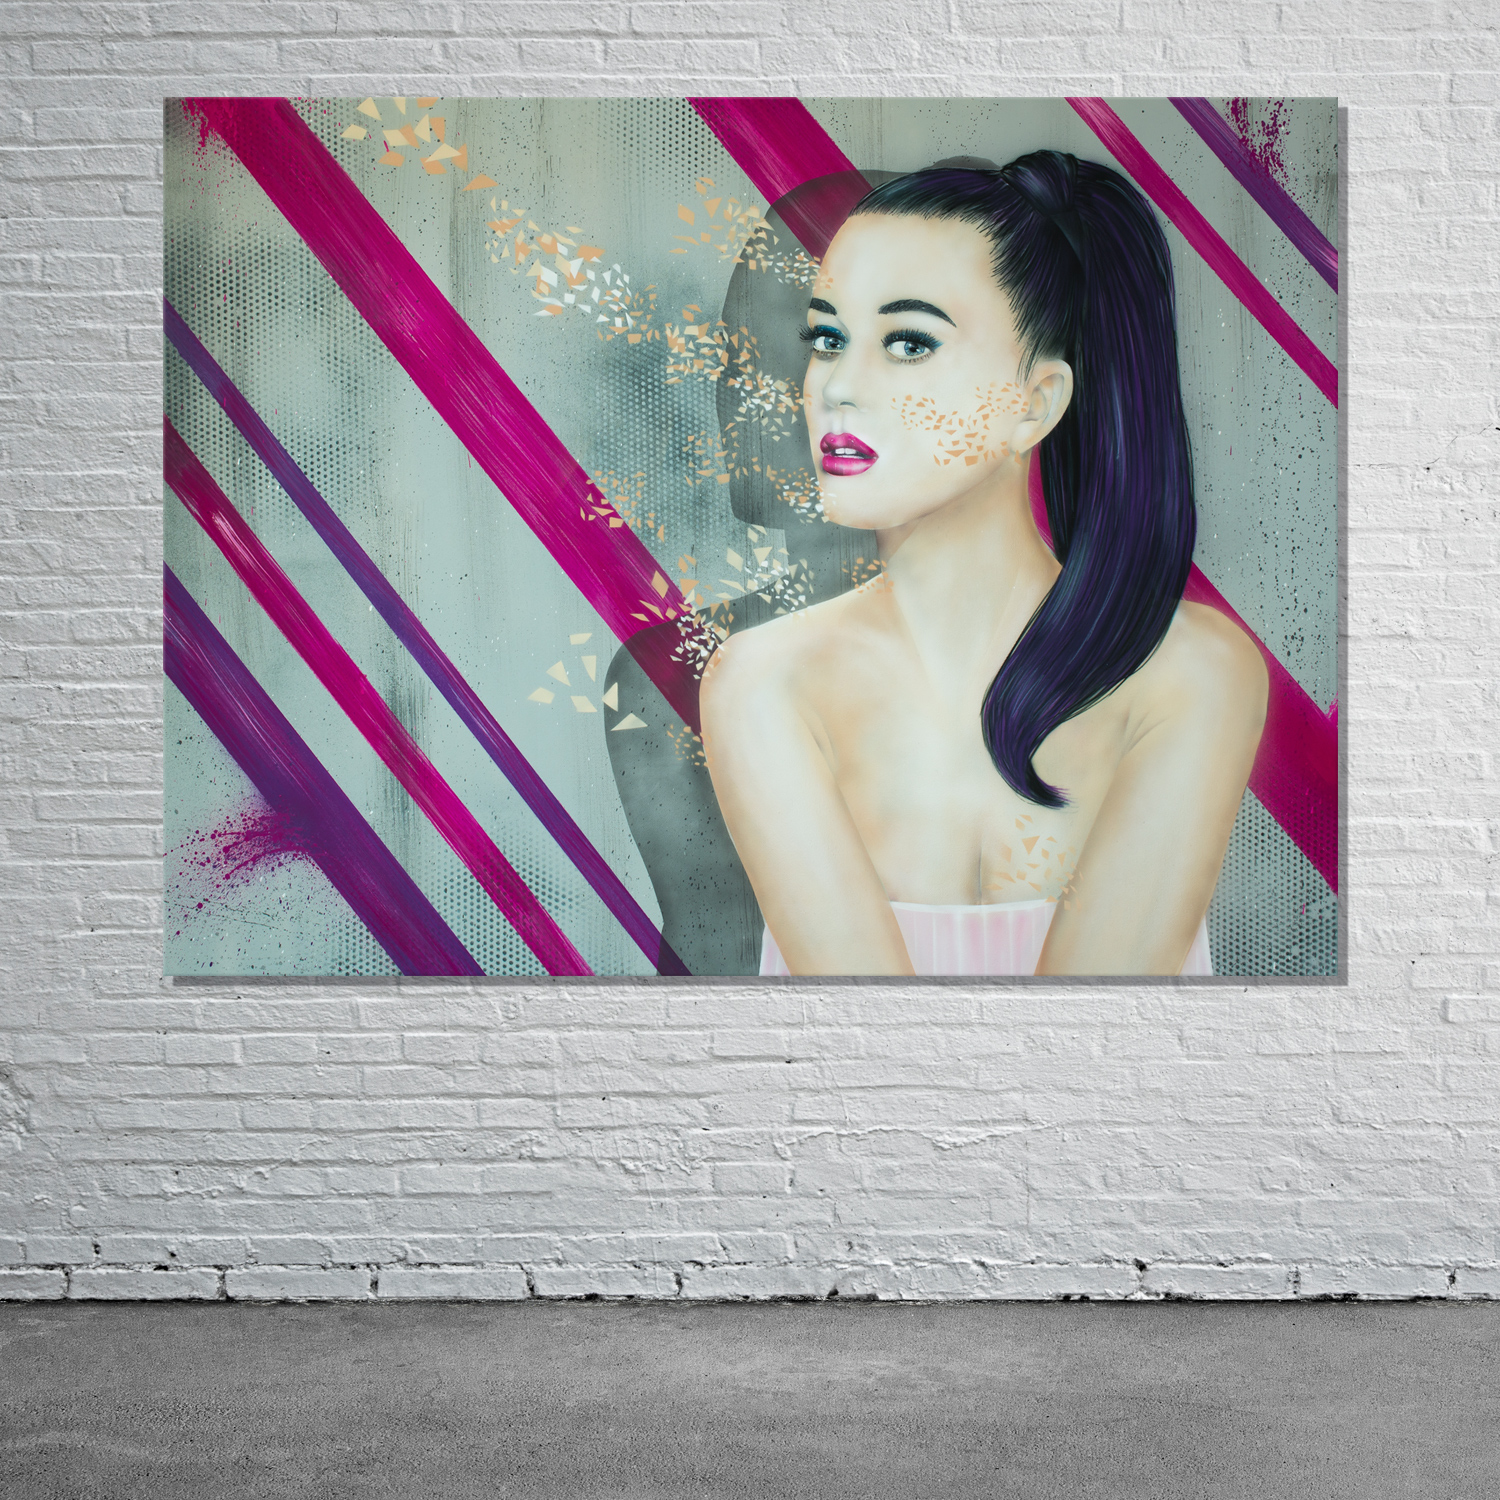 graffiti katy perry leinwand oder andere musiker wir. Black Bedroom Furniture Sets. Home Design Ideas